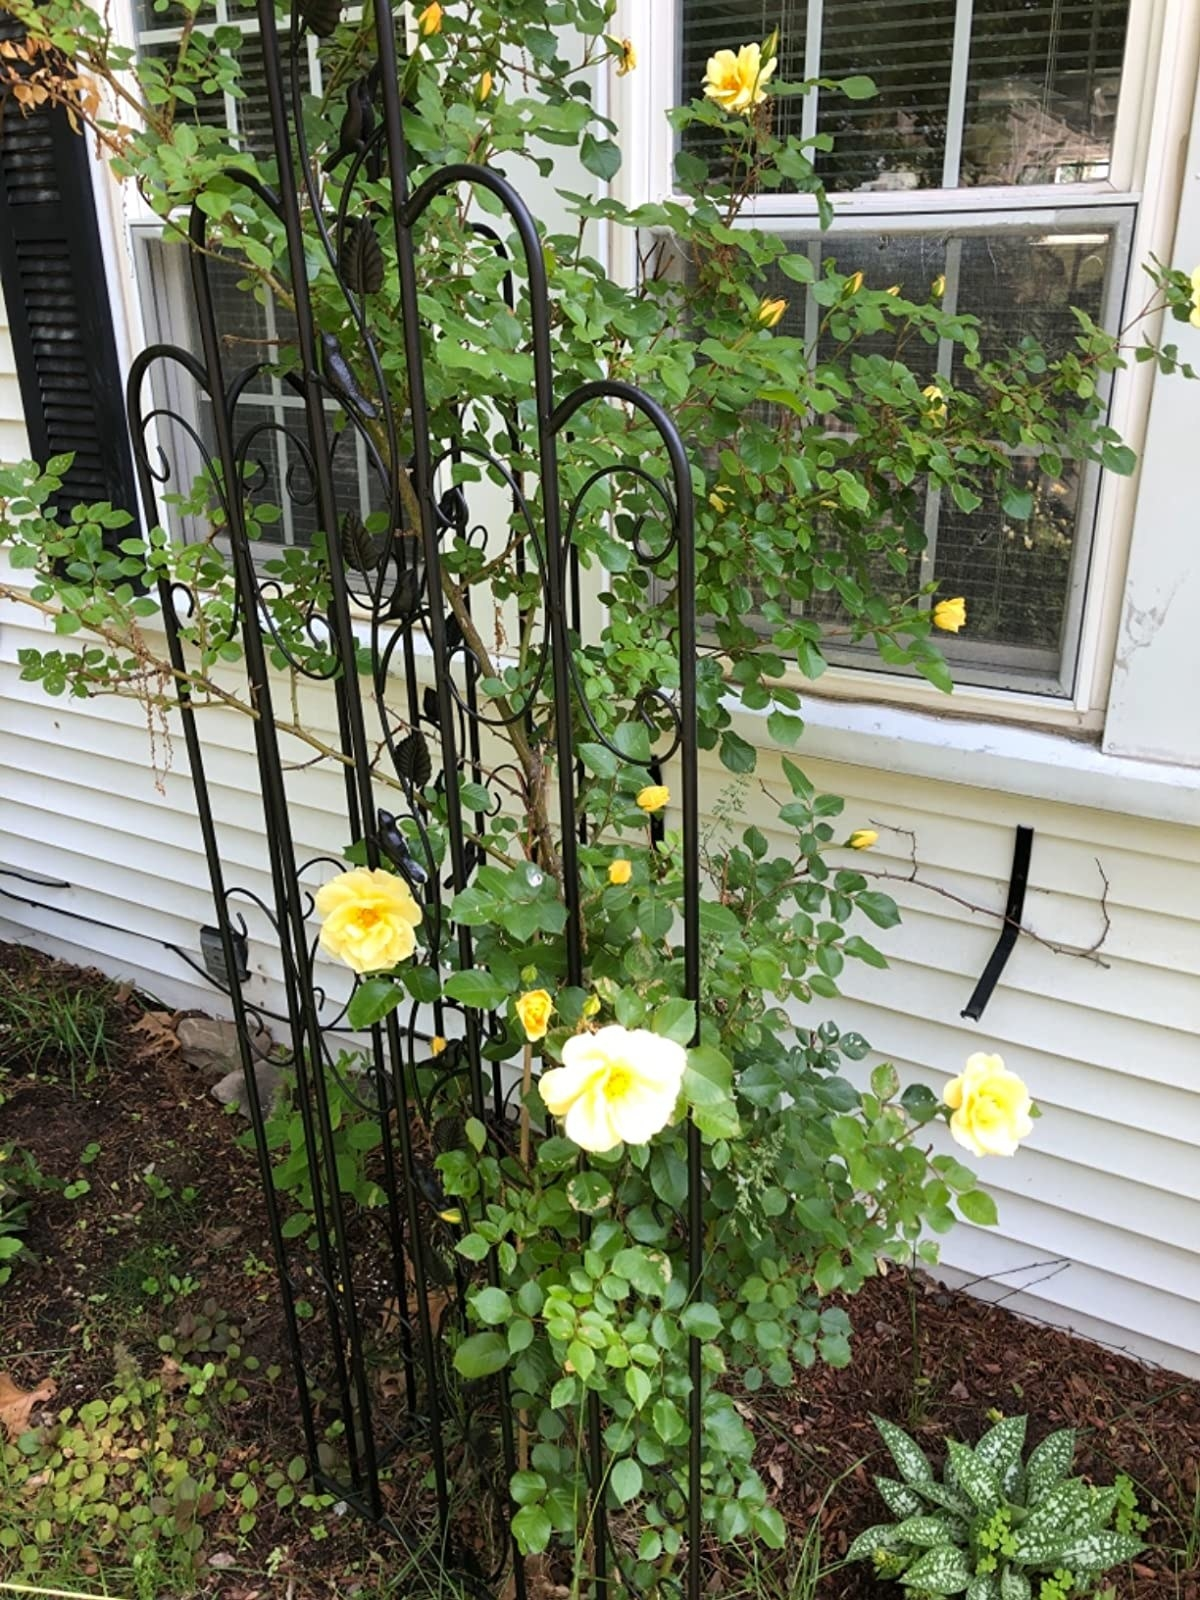 A reviewer photo of a garden trellis with flowers growing on it